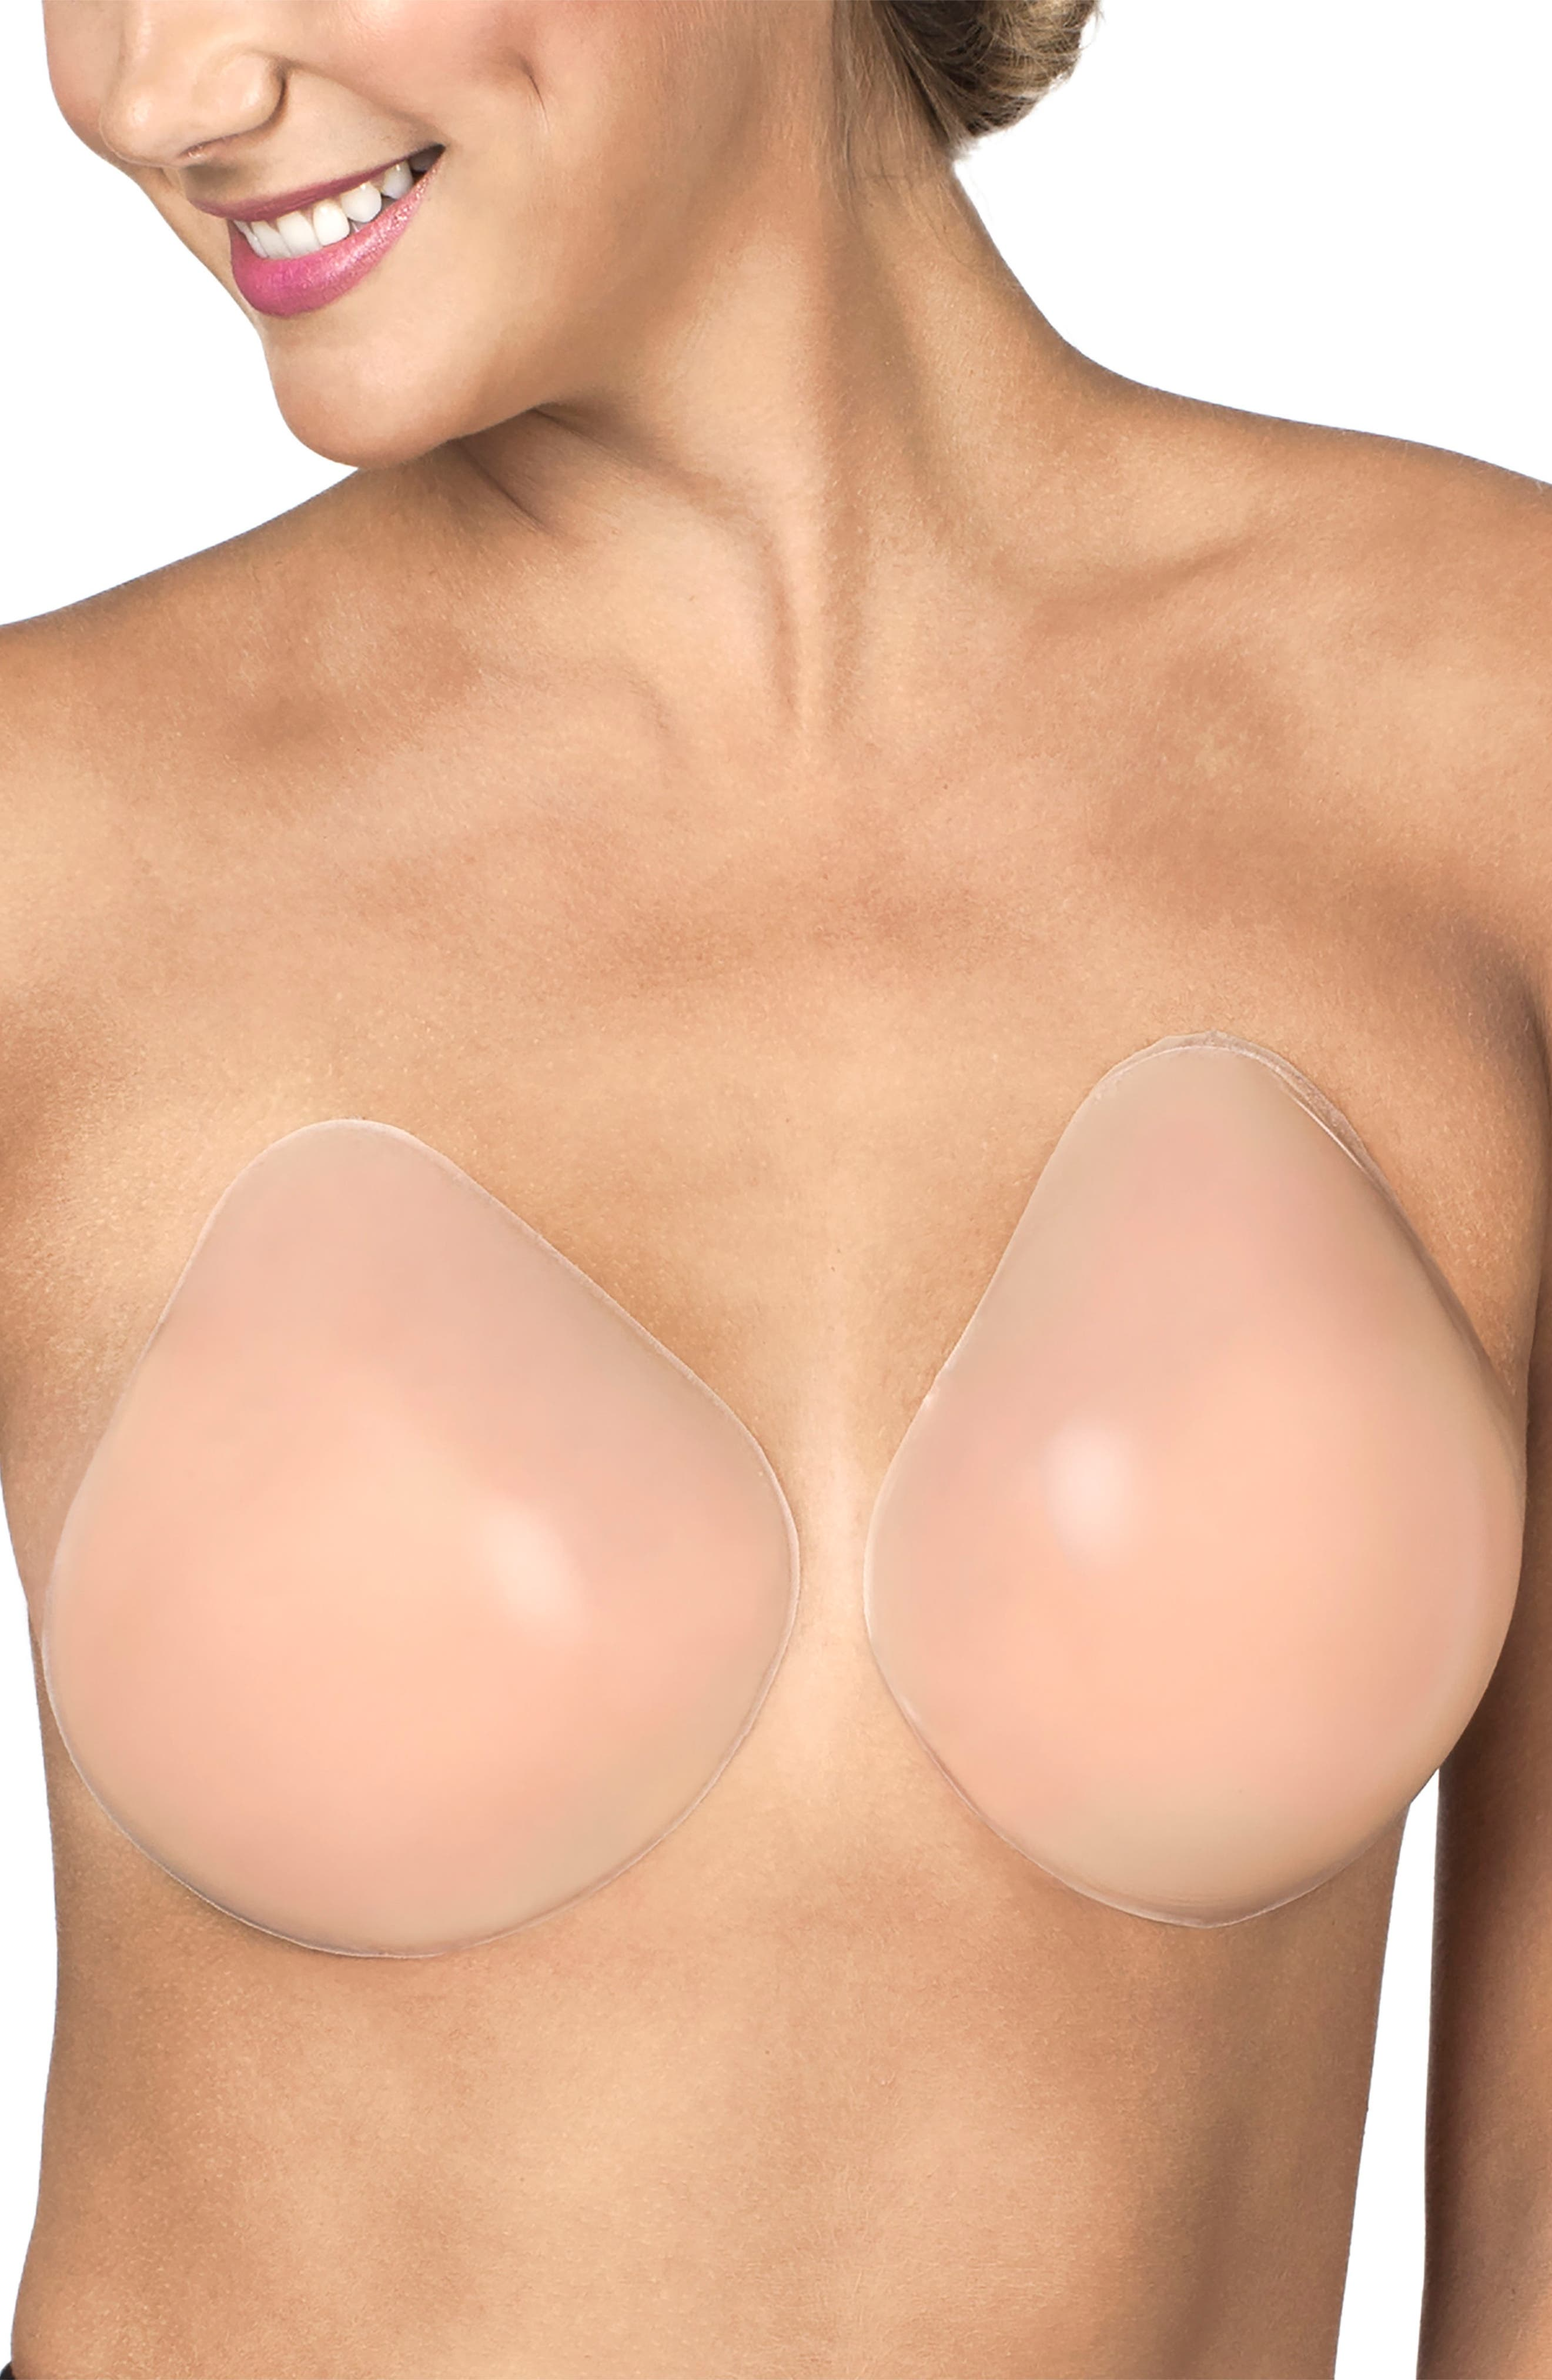 Lift It Up Adhesive Silicone Bra,                             Main thumbnail 1, color,                             NUDE